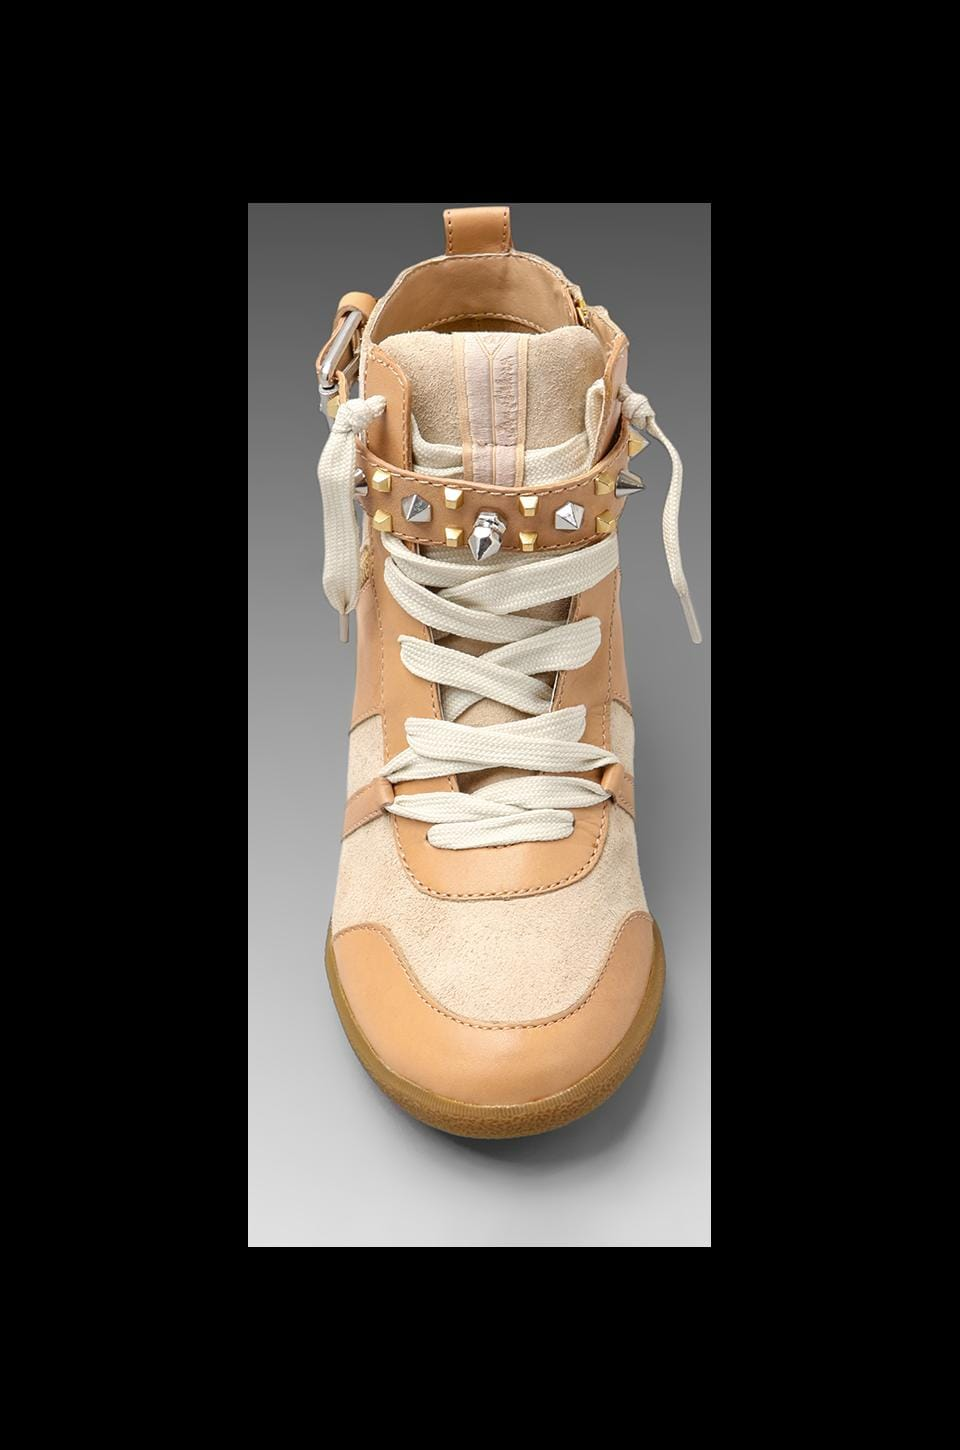 Sam Edelman Brogan Sneaker in New Blush/Sandy Beach